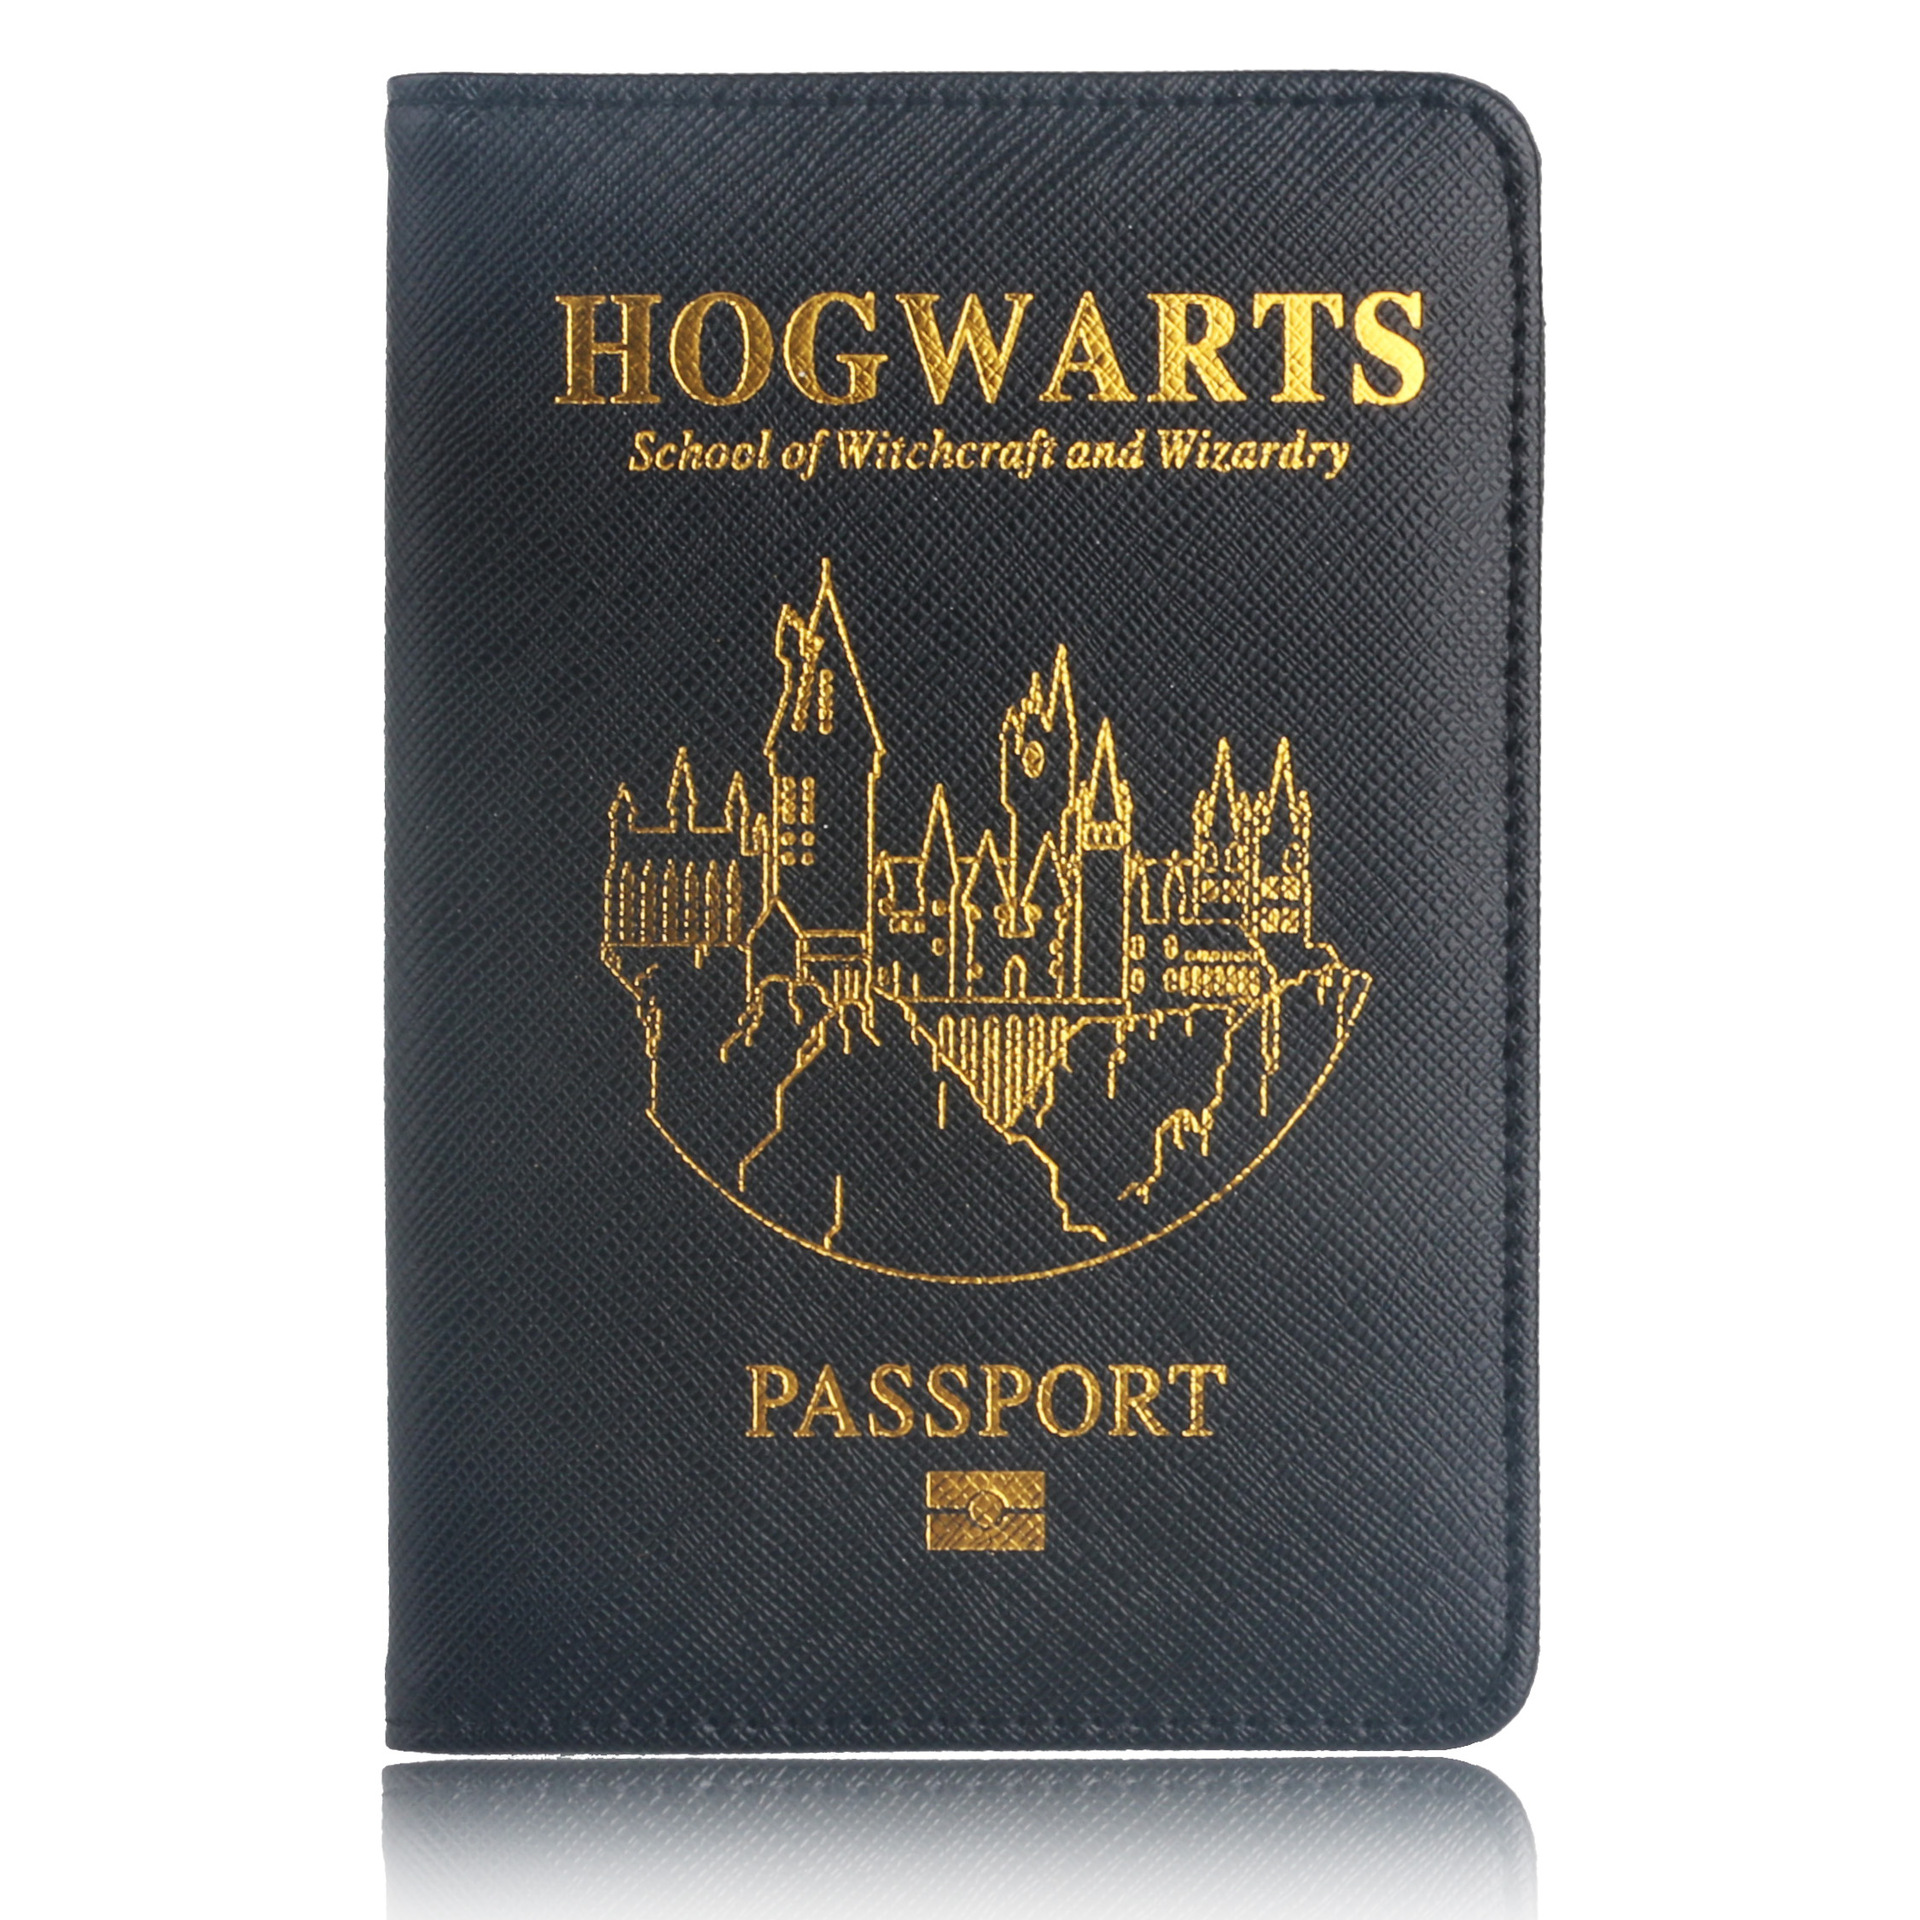 Hogwarts Gryffindor Ravenclaw Hermione Slytherin Hufflepuff Passport Cover Protective Multi Card Holder Travel Passport Holder